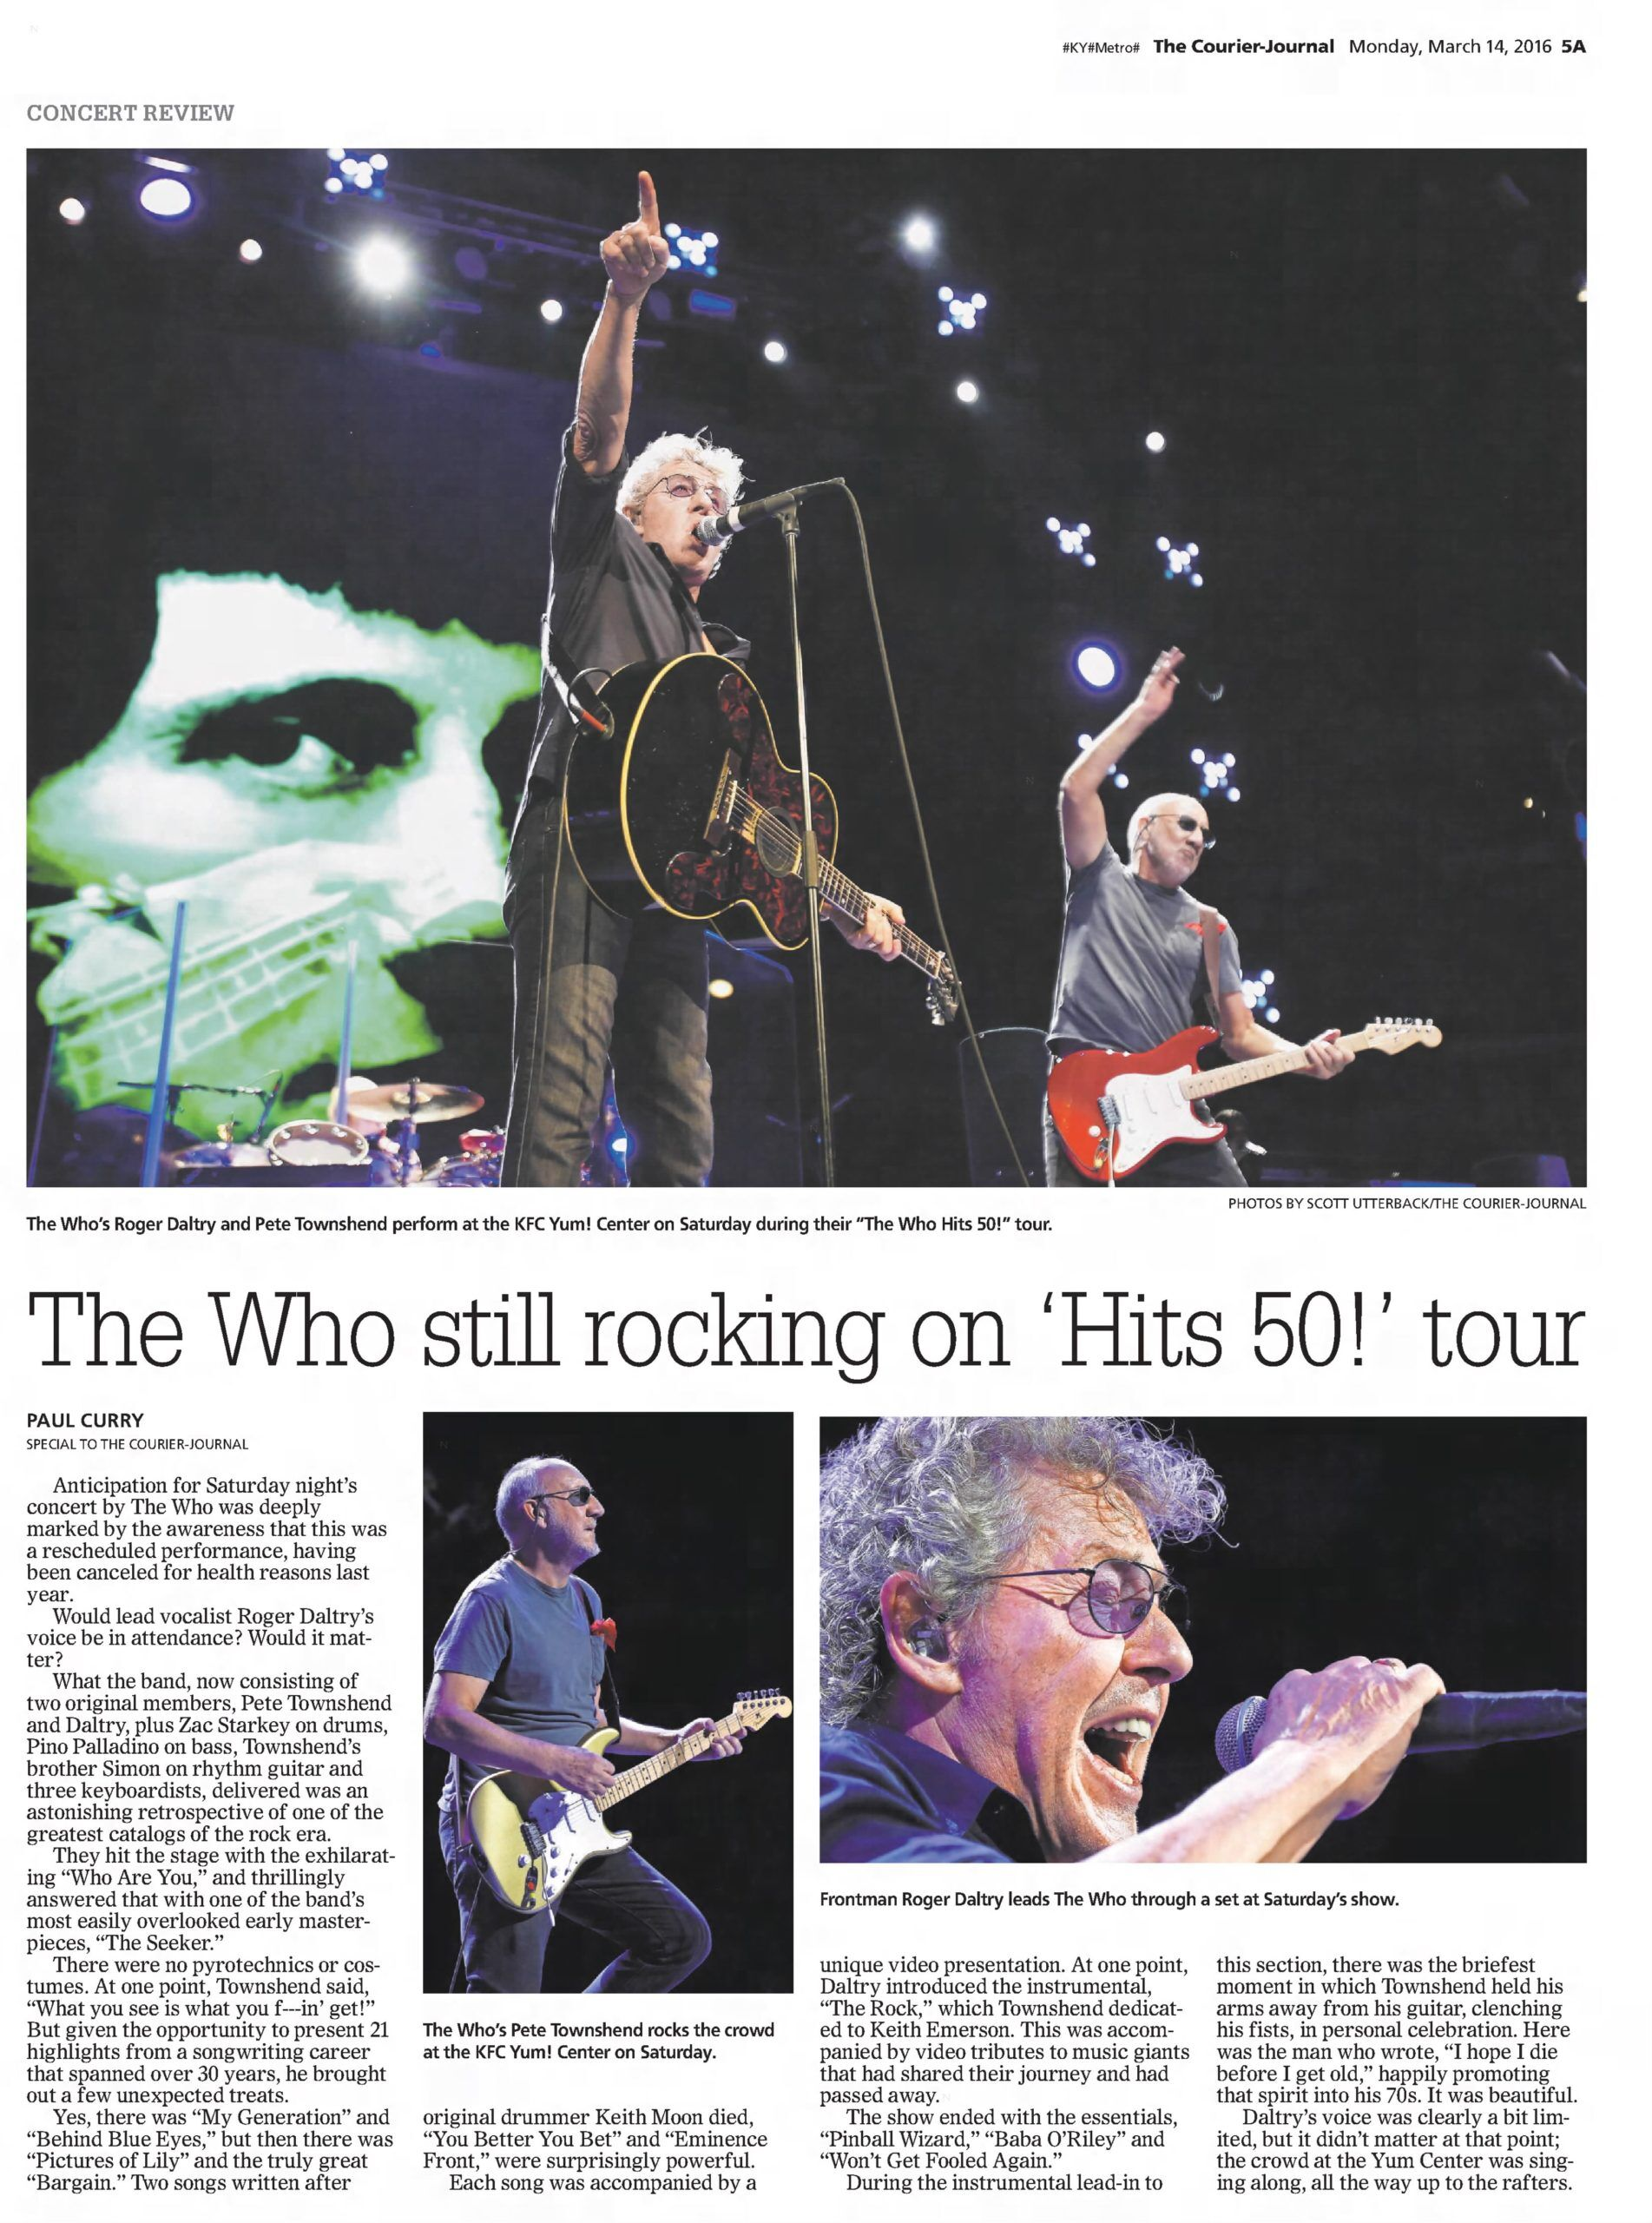 Review of The Who's March 12, 2016 concert